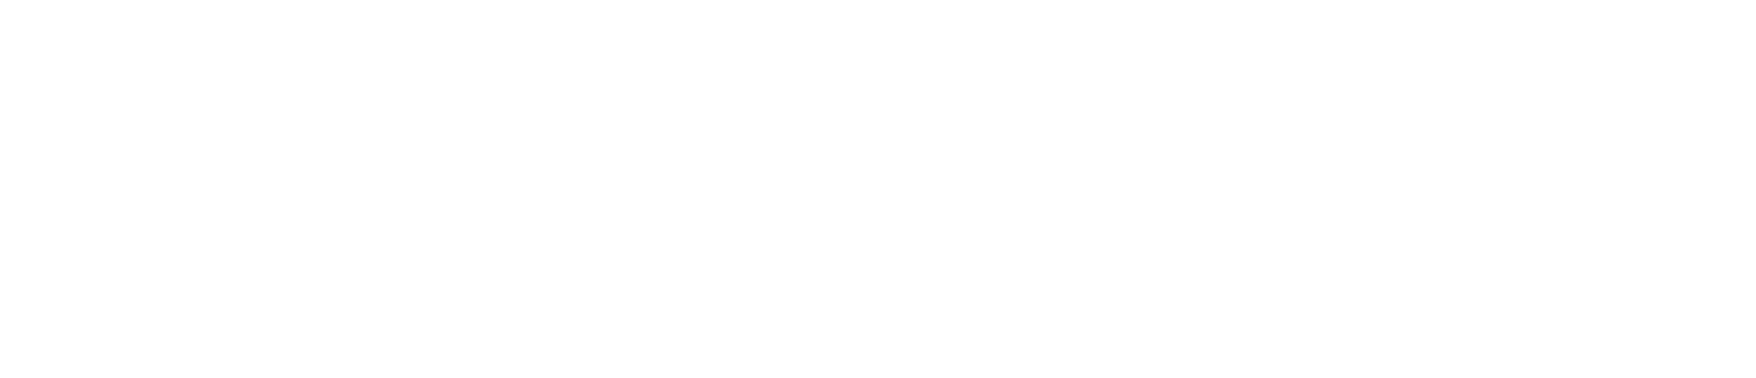 Our Lady of the Hills